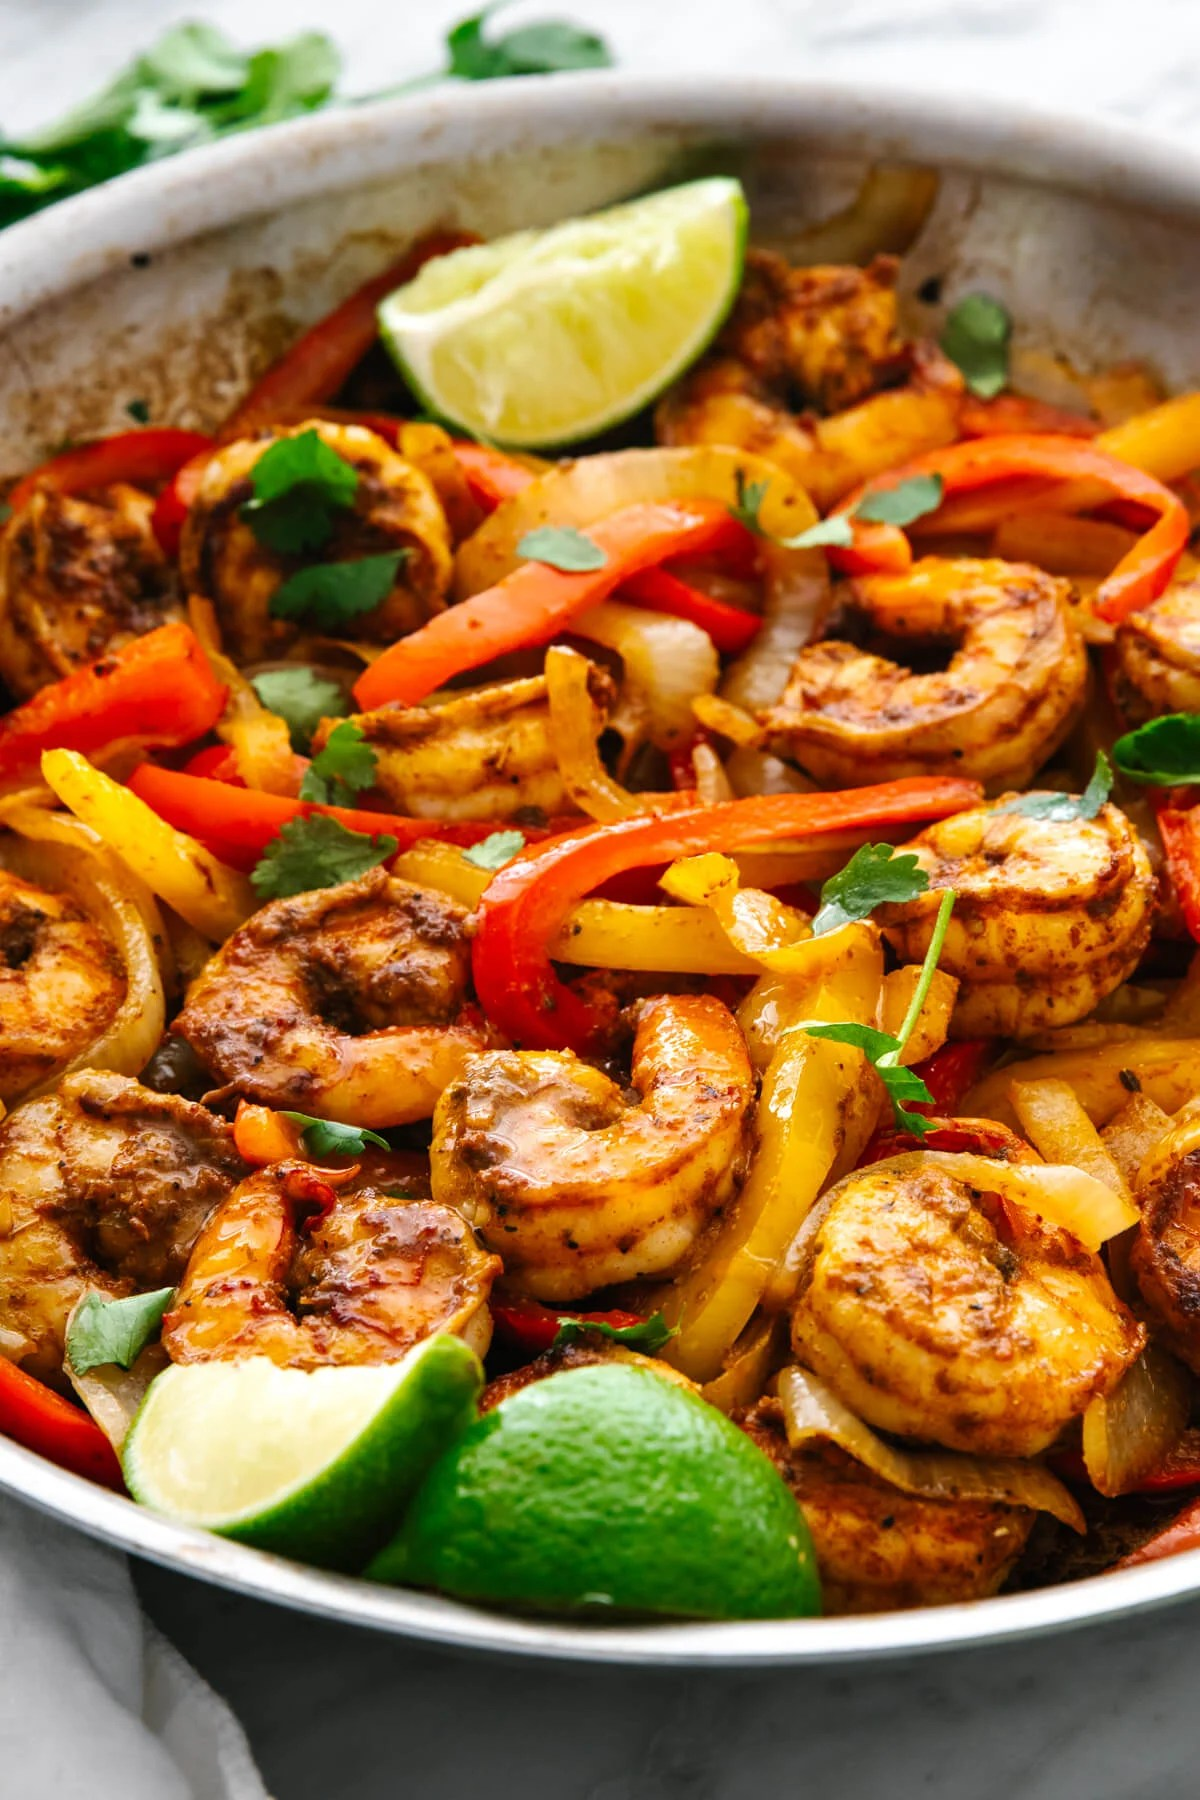 A pan of shrimp fajitas with limes.